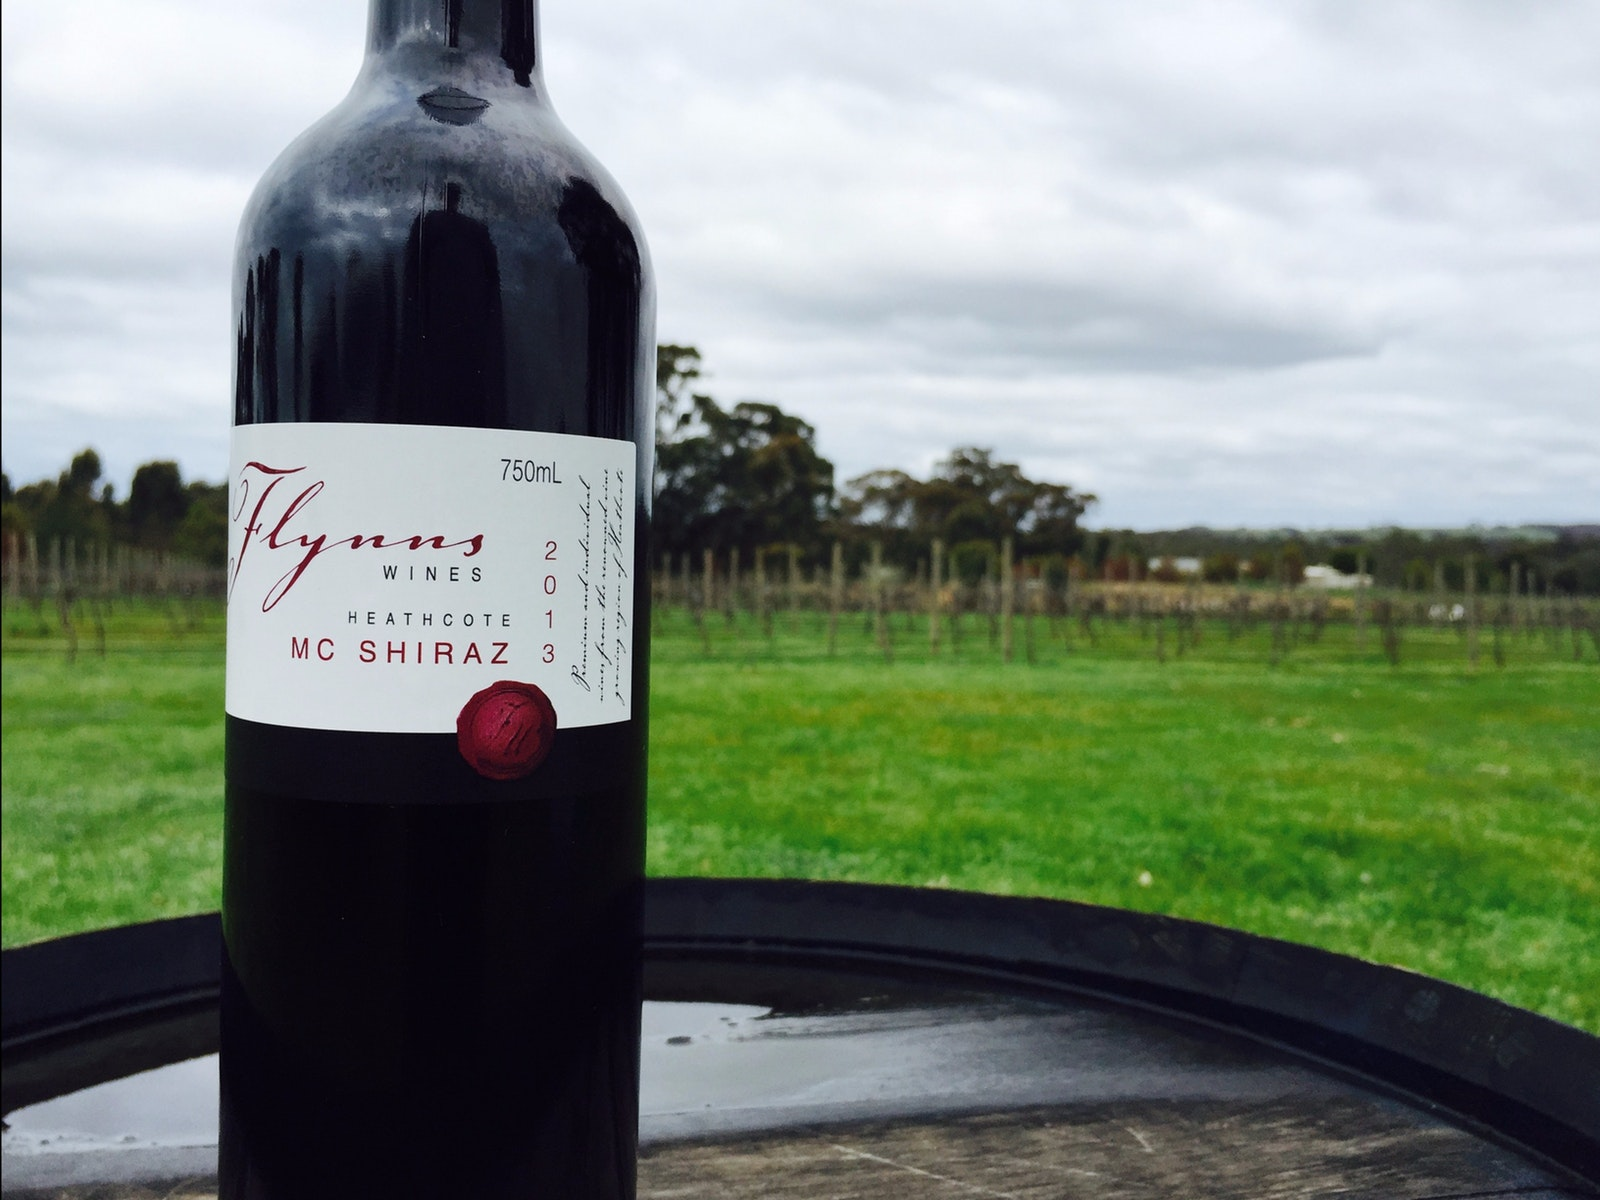 Heathcote Wine Tour